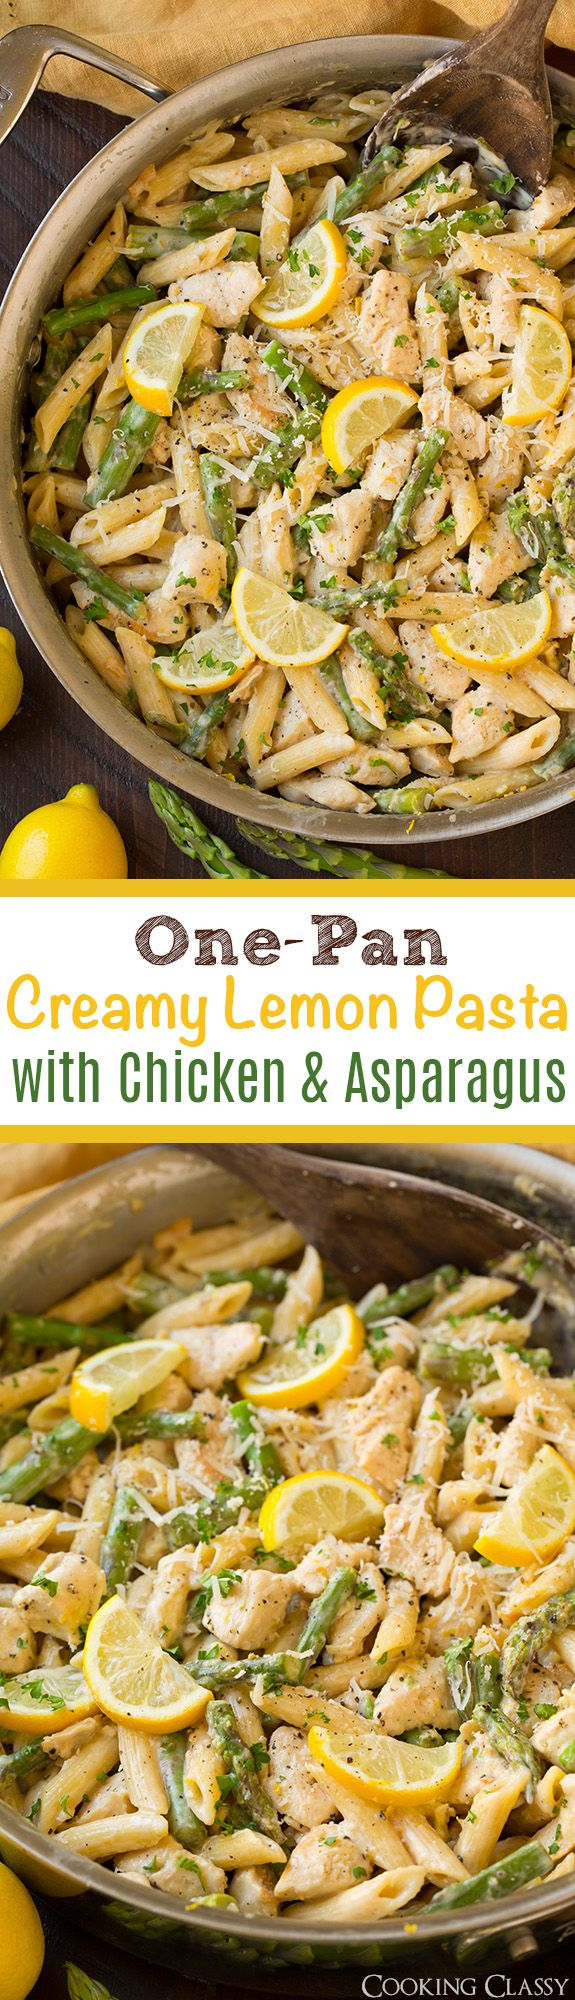 One pan creamy lemon pasta with chicken and asparagus so easy one pan creamy lemon pasta with chicken and asparagus so easy so flavorful ccuart Image collections